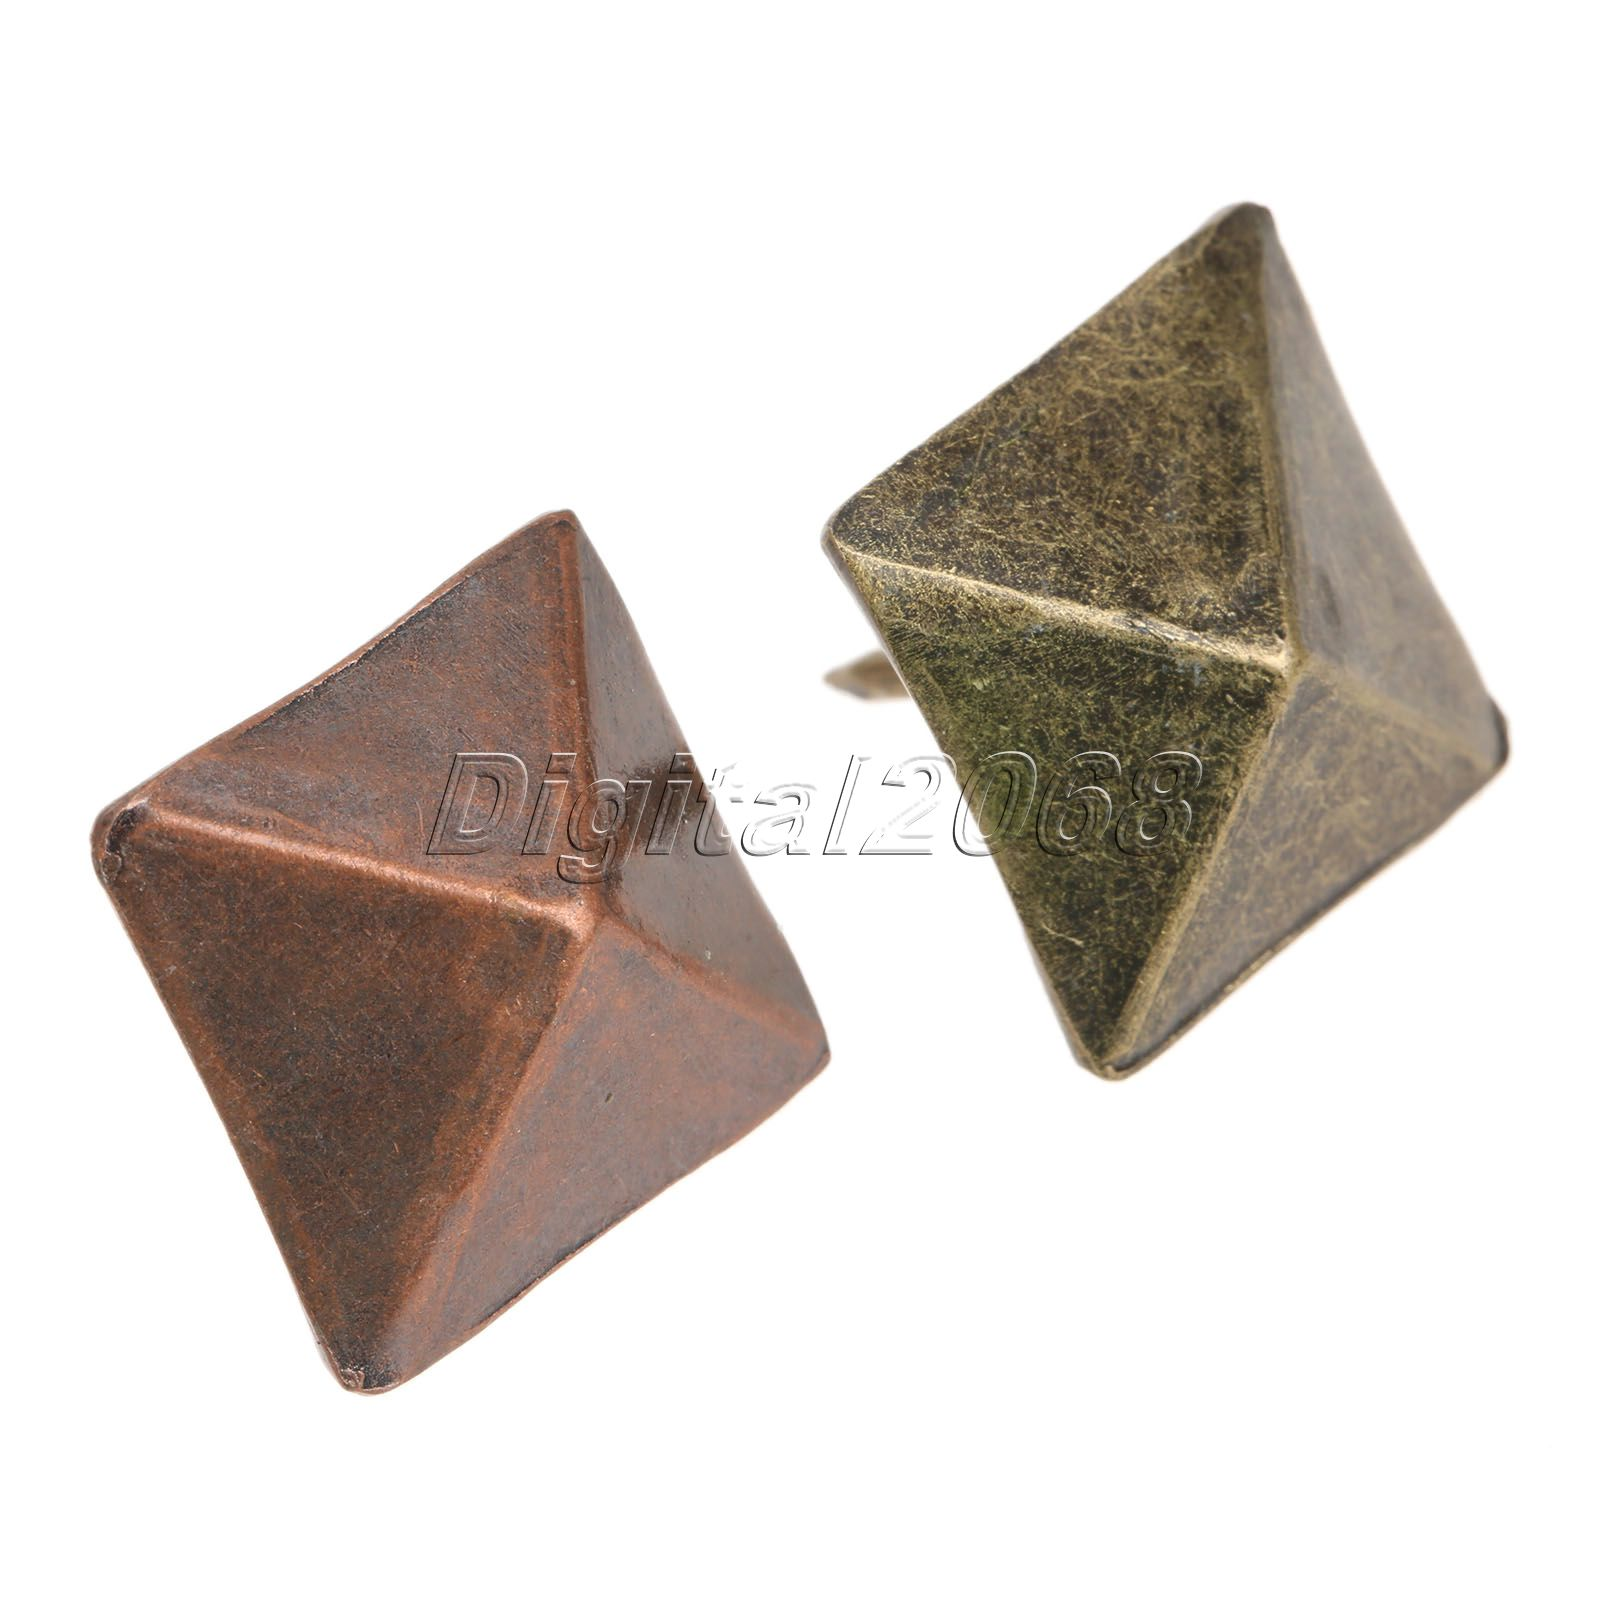 50 Pcs Decorative Upholstery Nail Copper Pyramid Square Rivet Tack For Leather Crafts And Furniture 19x19x21mm